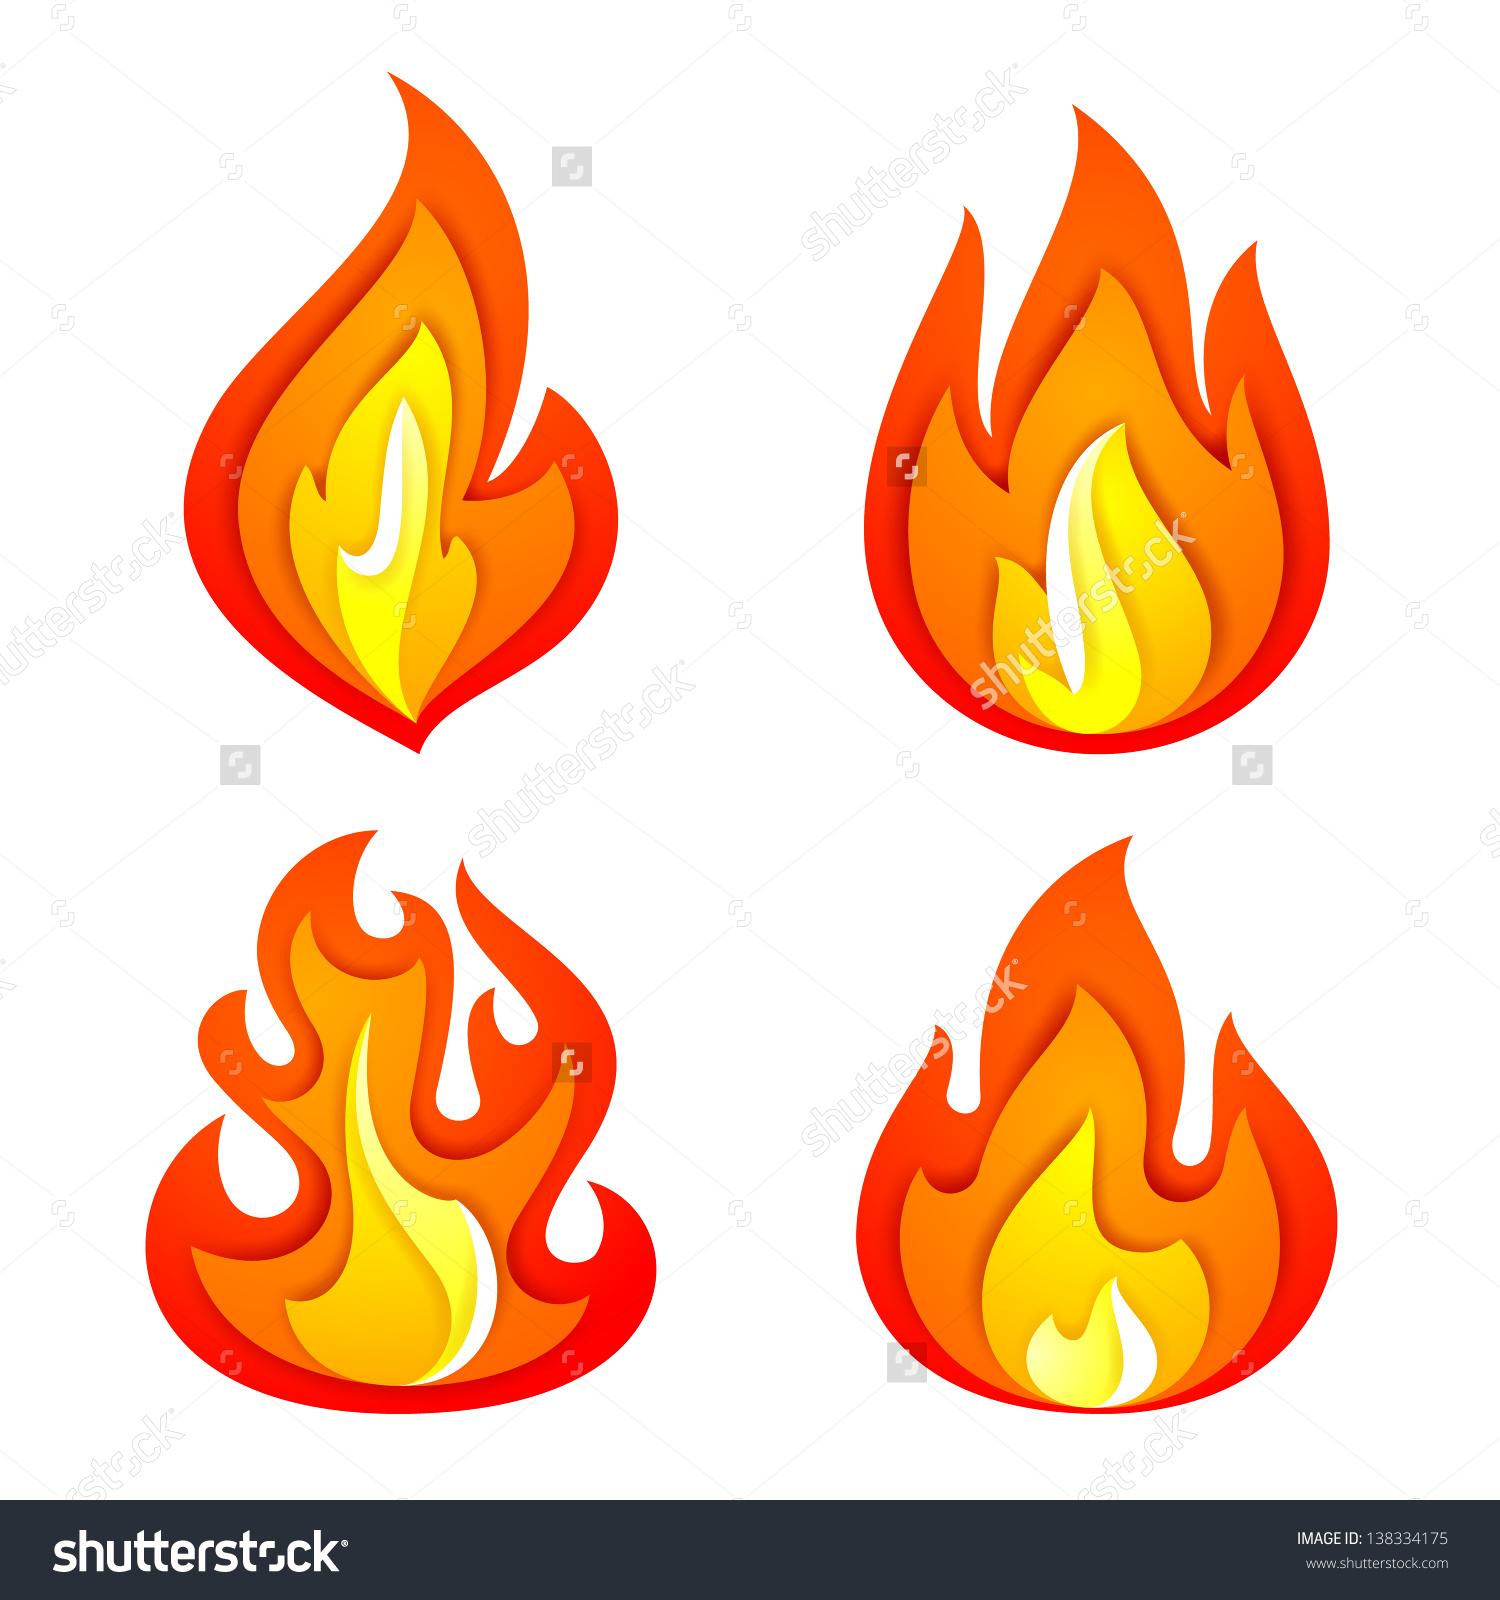 Flames clipart fireplace fire Fire clipart Clipart Pie Realistic